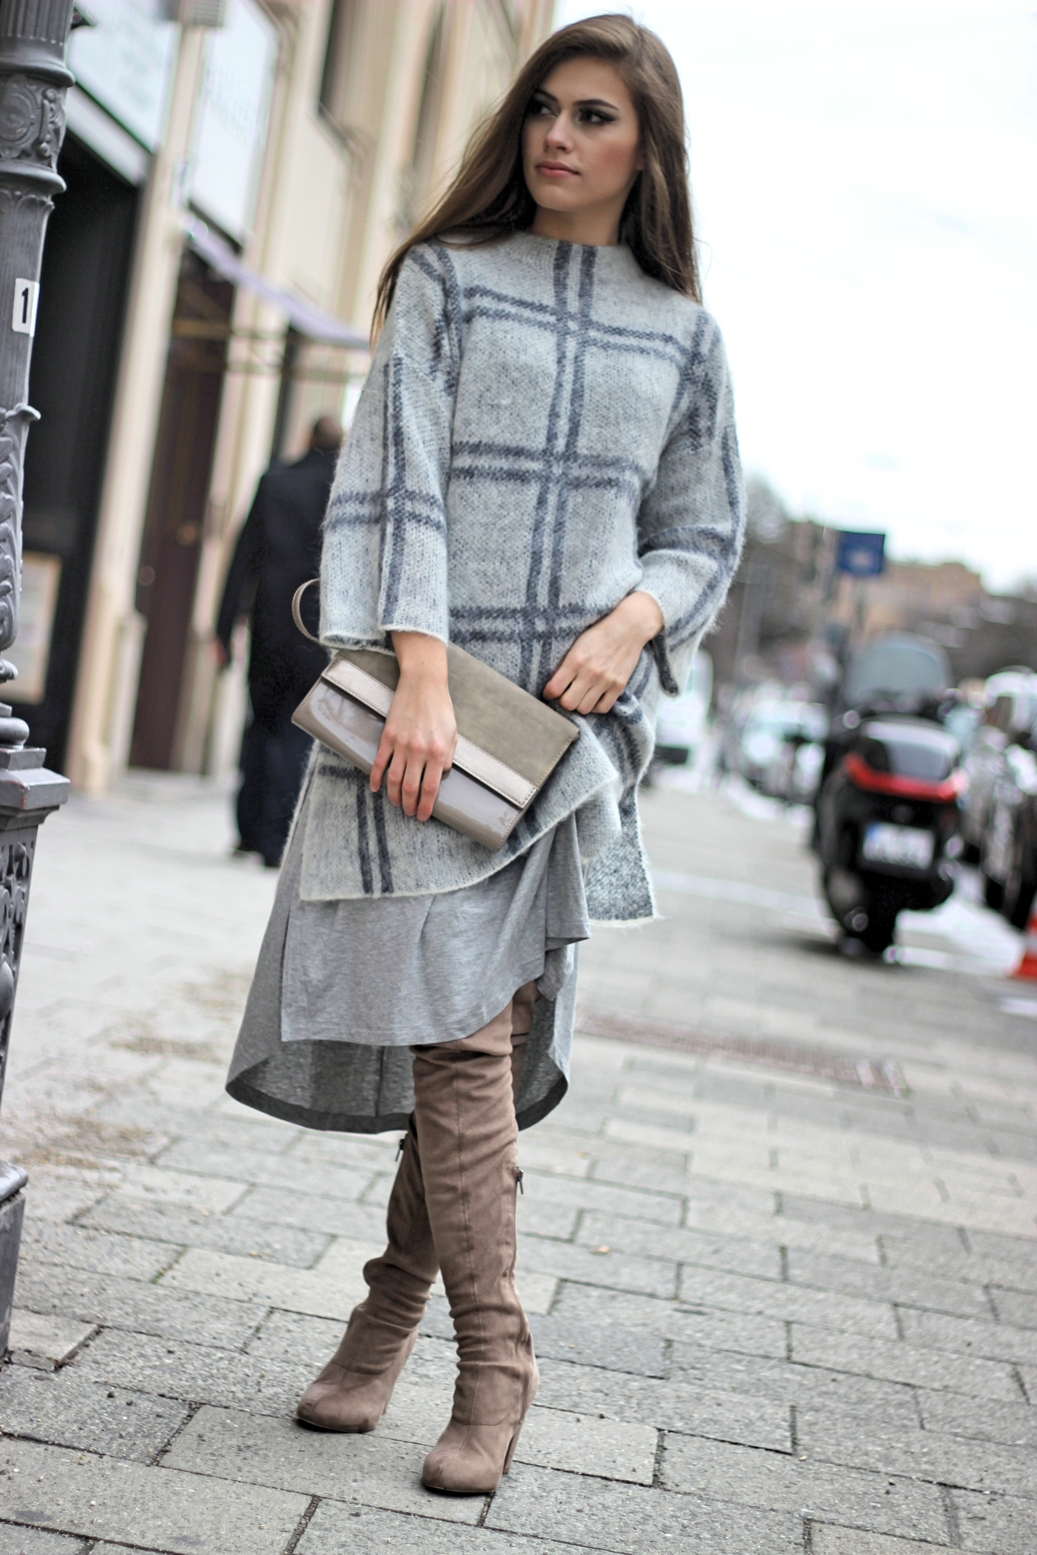 asos-street-style-münchen-grey-outfit-overknee-boots